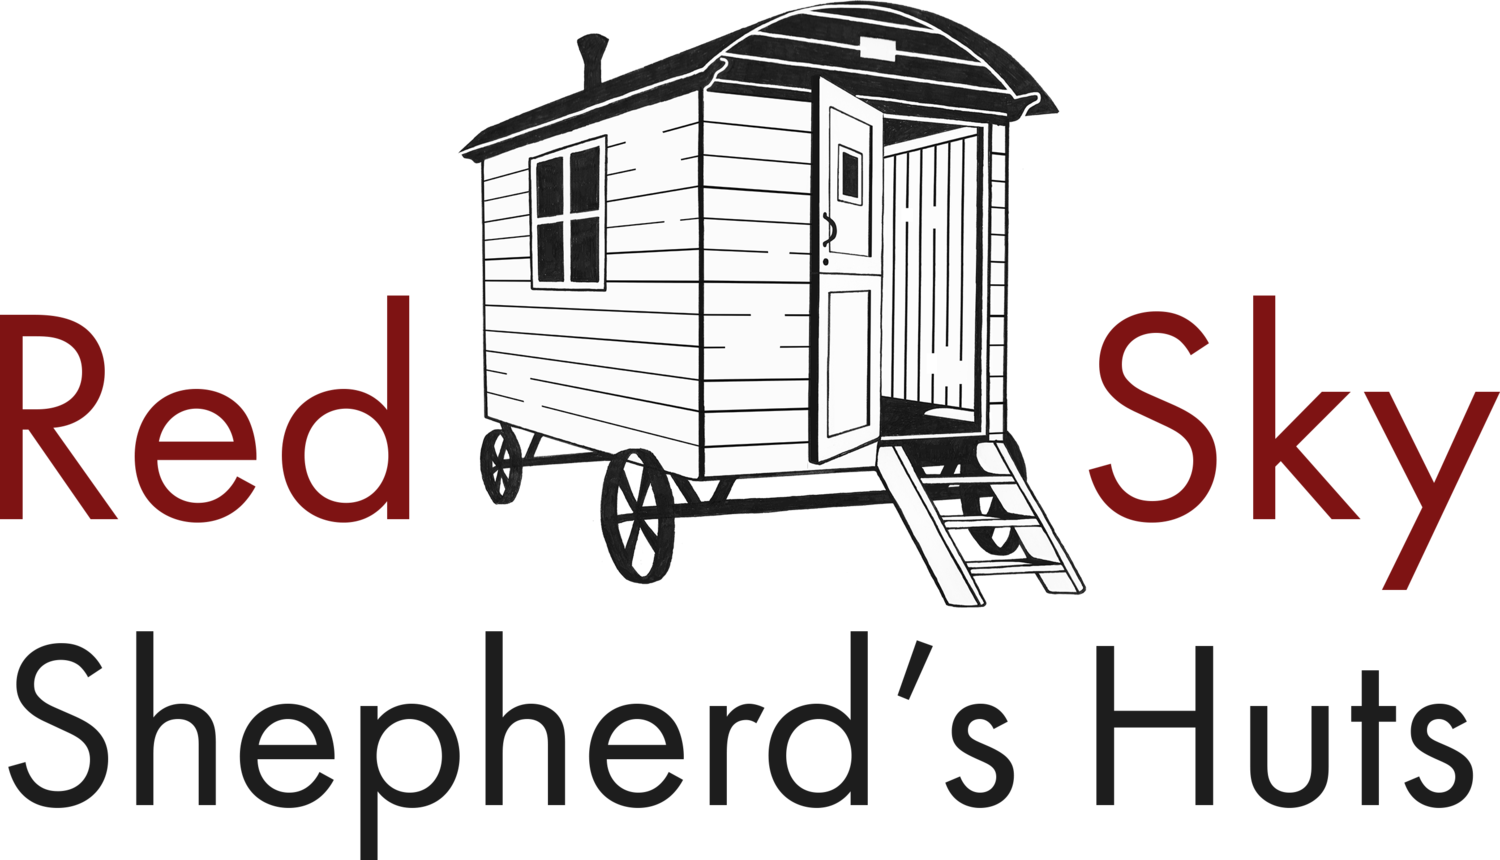 Red Sky Shepherd's Huts